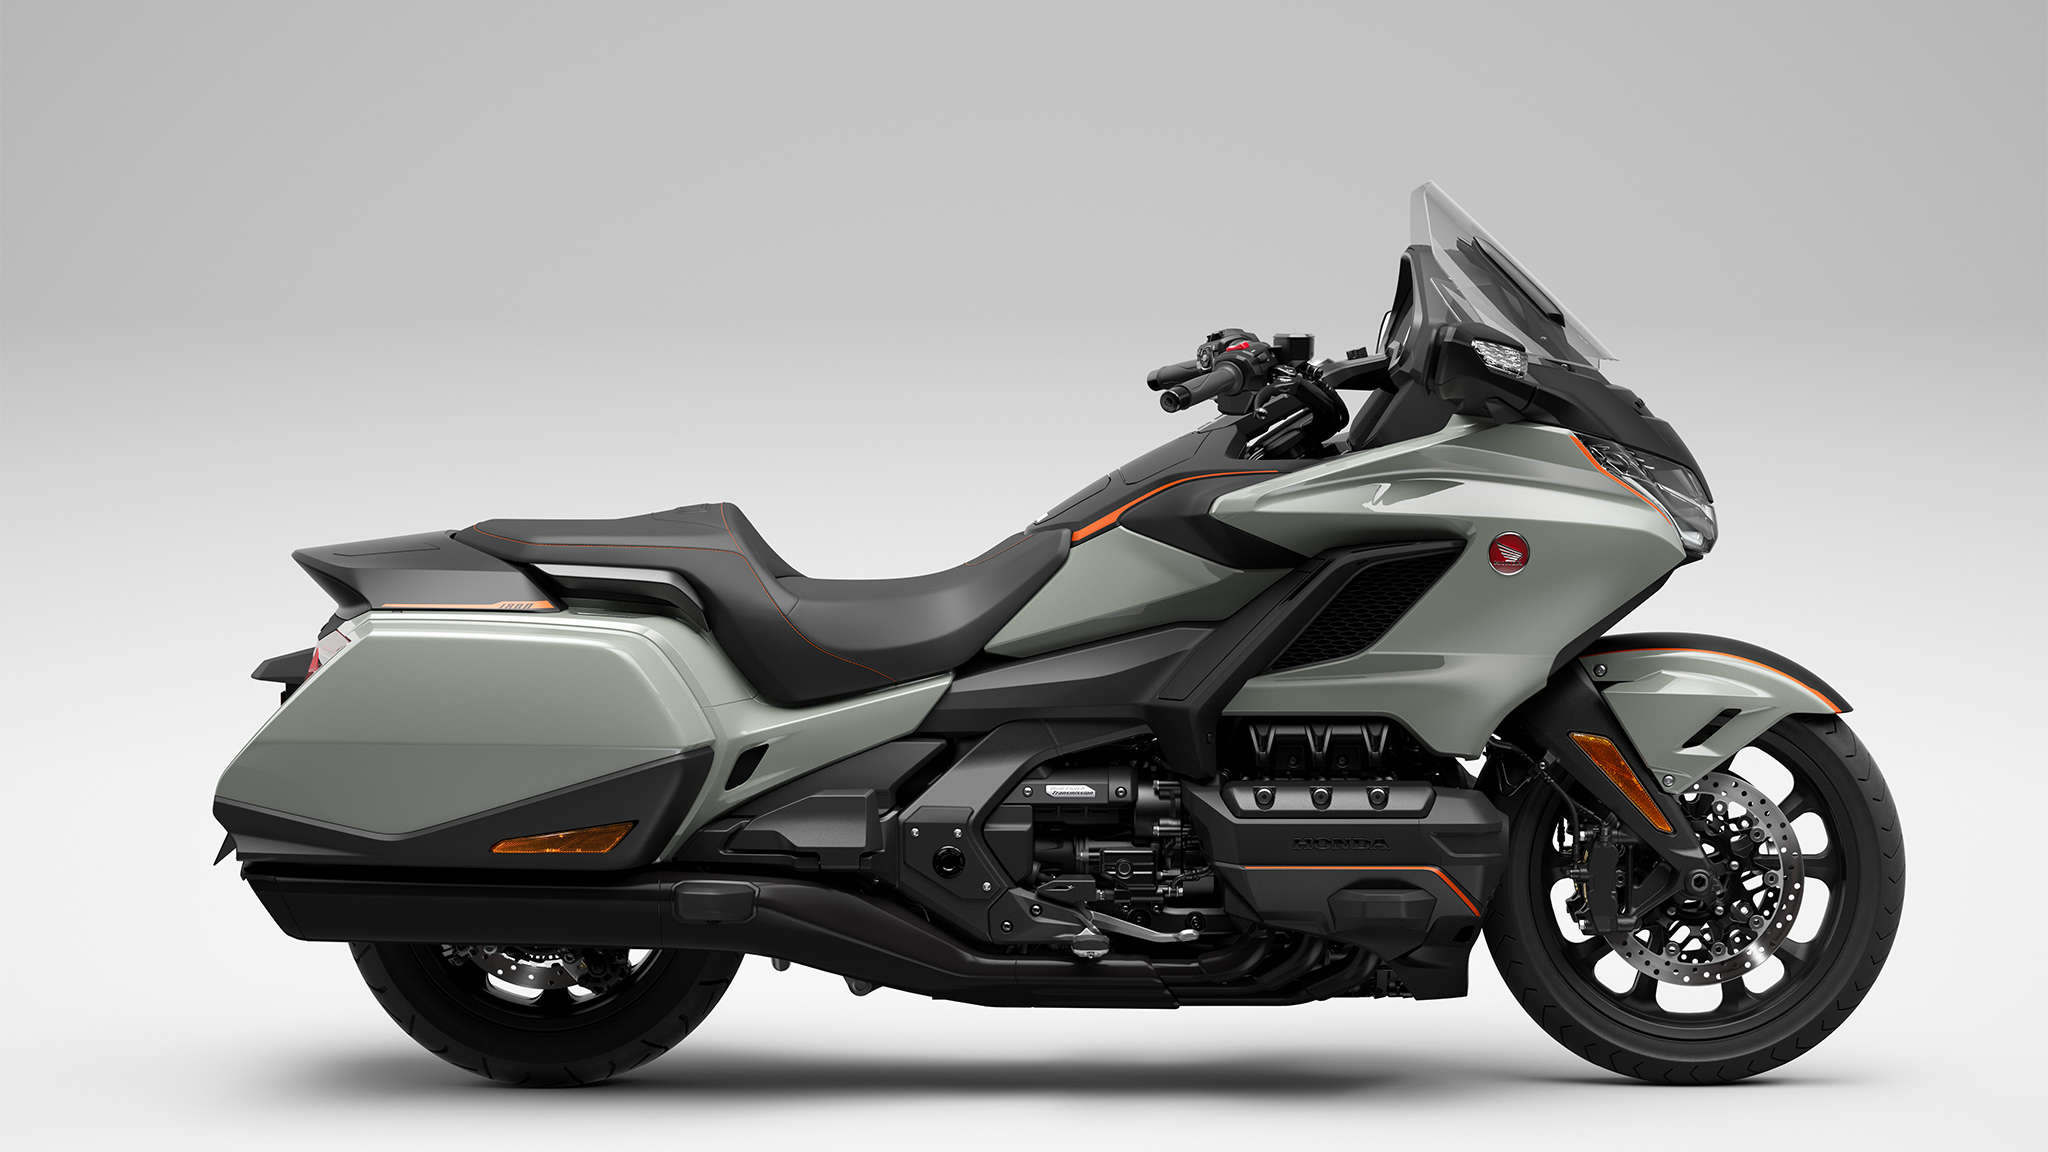 Honda GL1800 Gold Wing